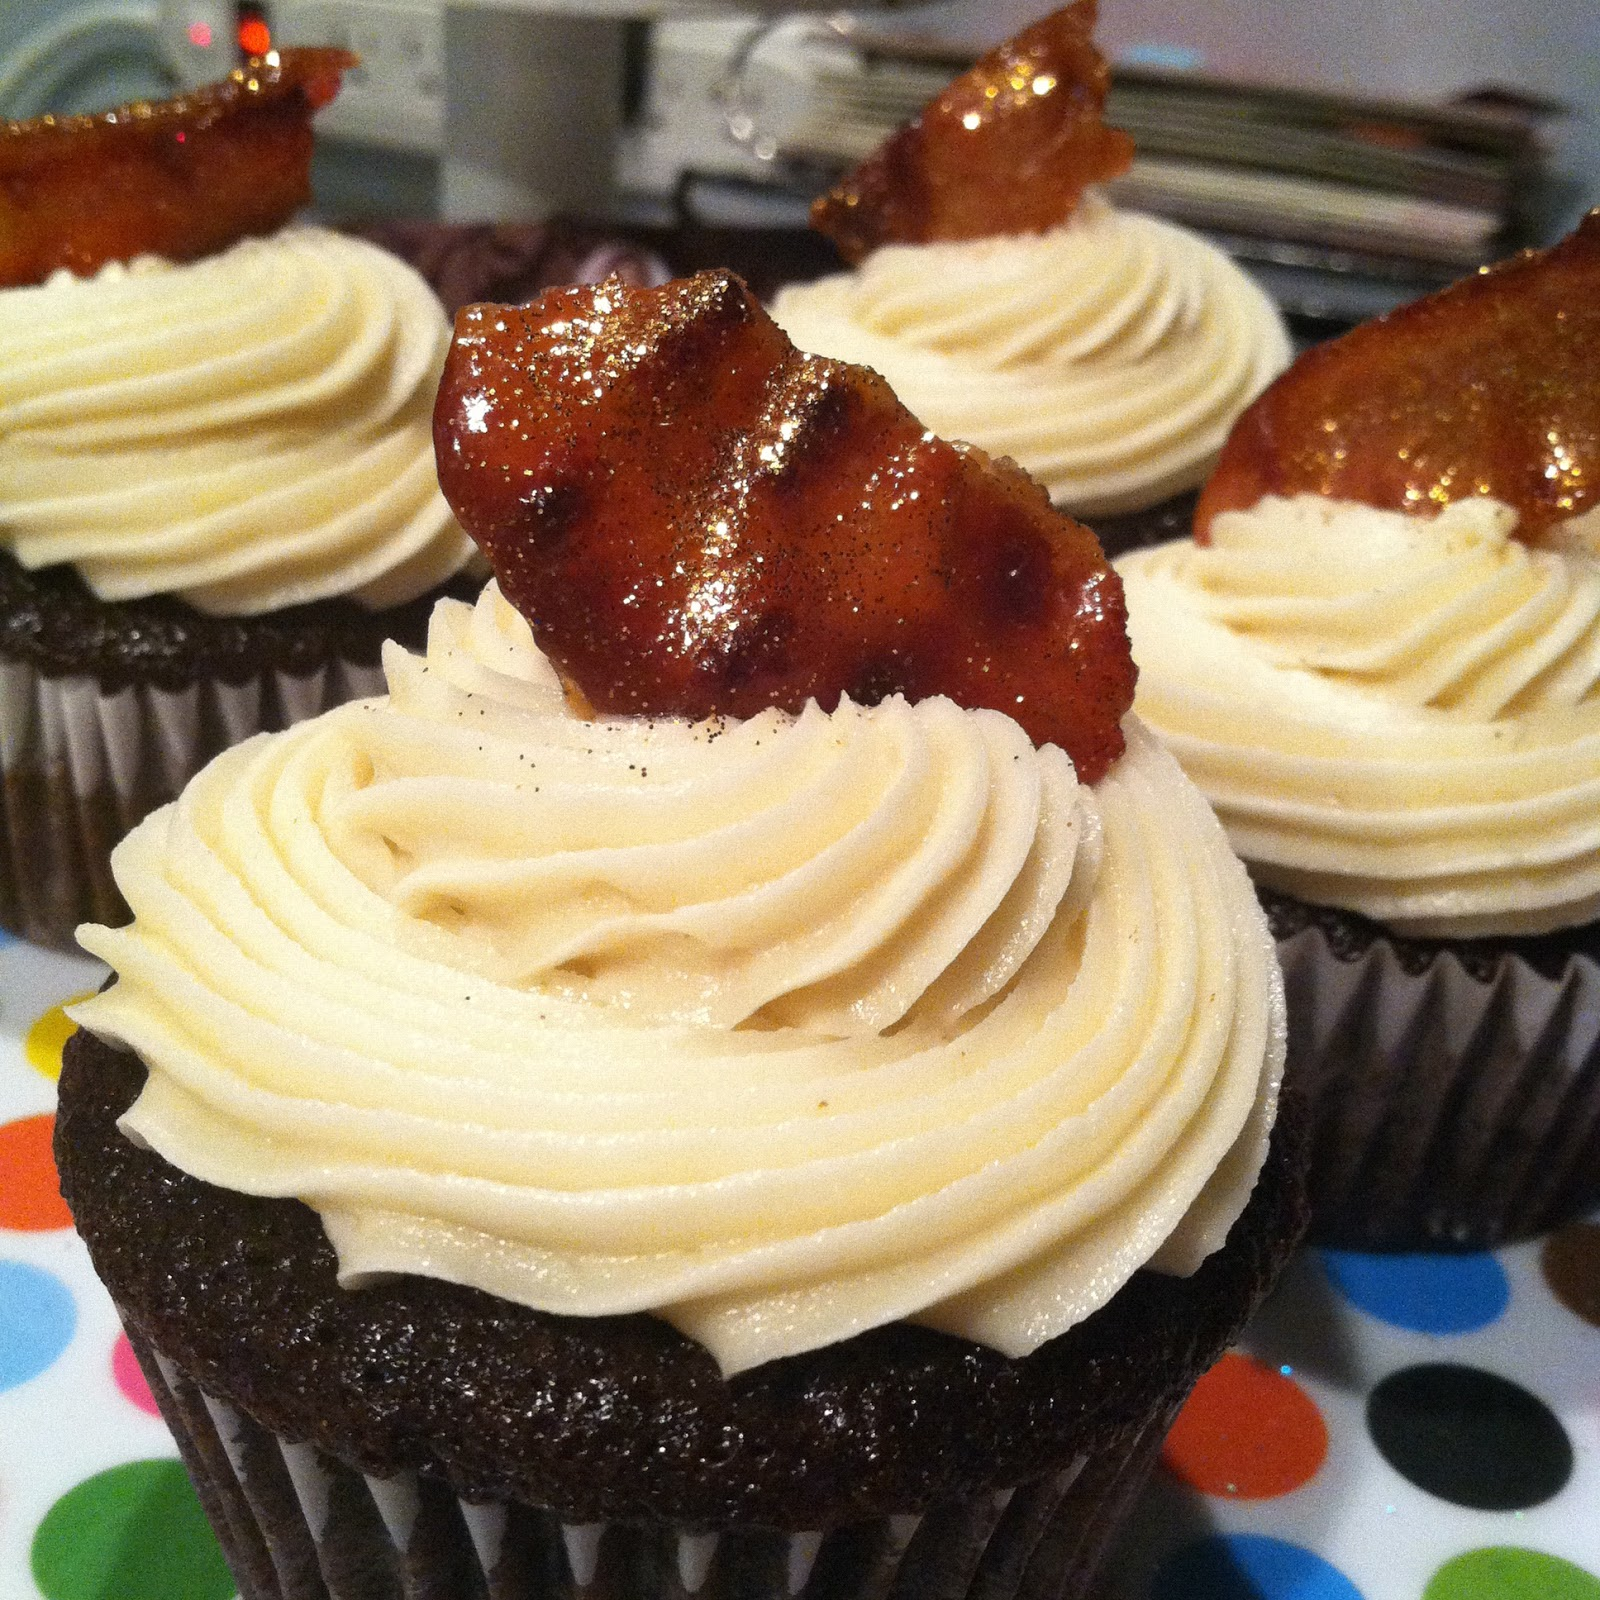 ... Cupcake. Sweet Dreamer ♥: Fearless Chocolate Maple Bacon Cupcakes